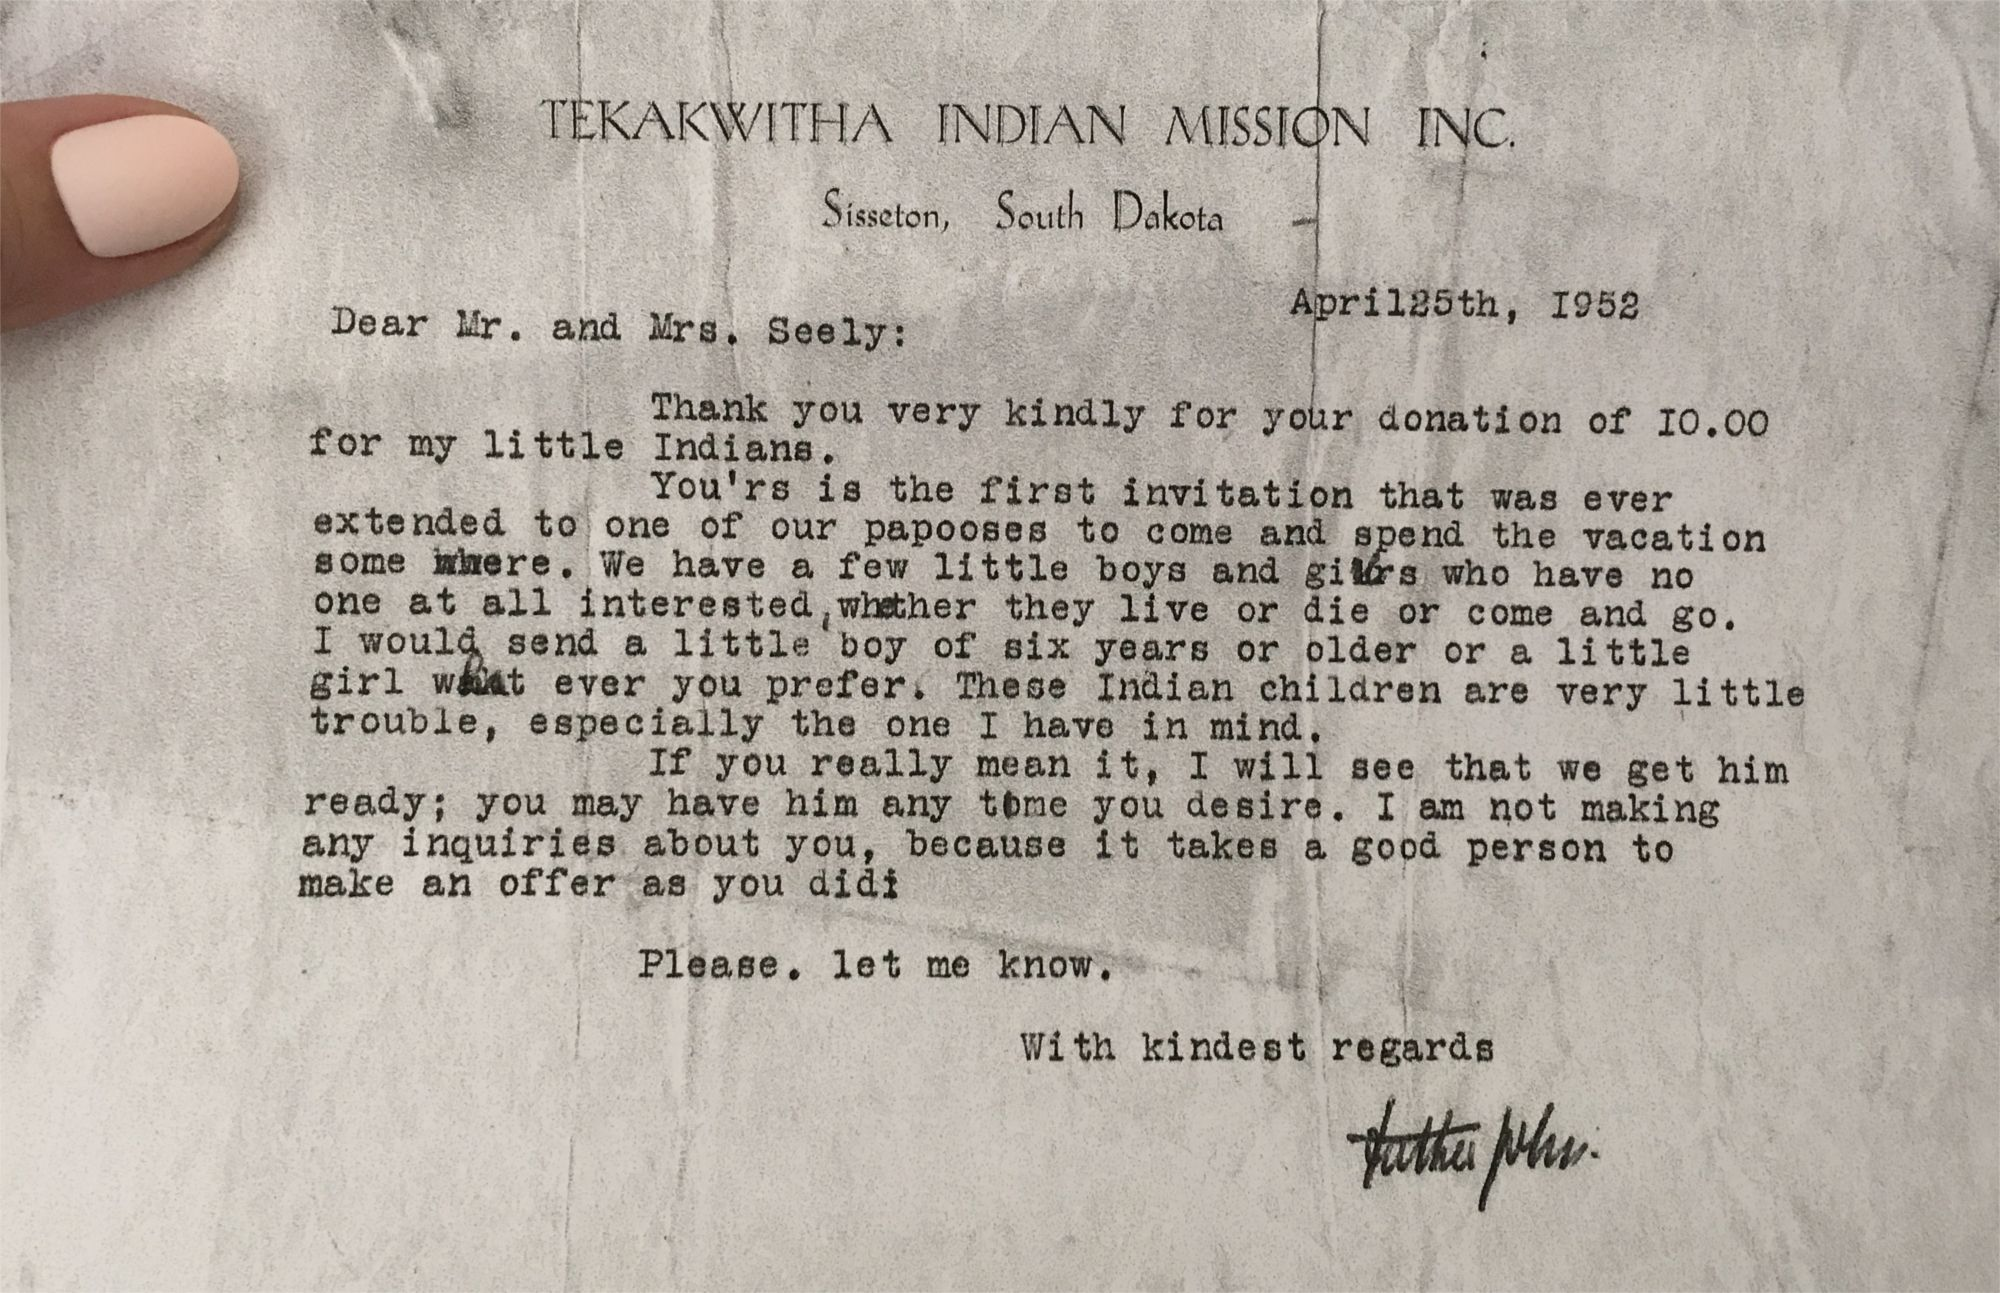 Courtesy of Dennis Isaac Seely lutheran indian ministries native news